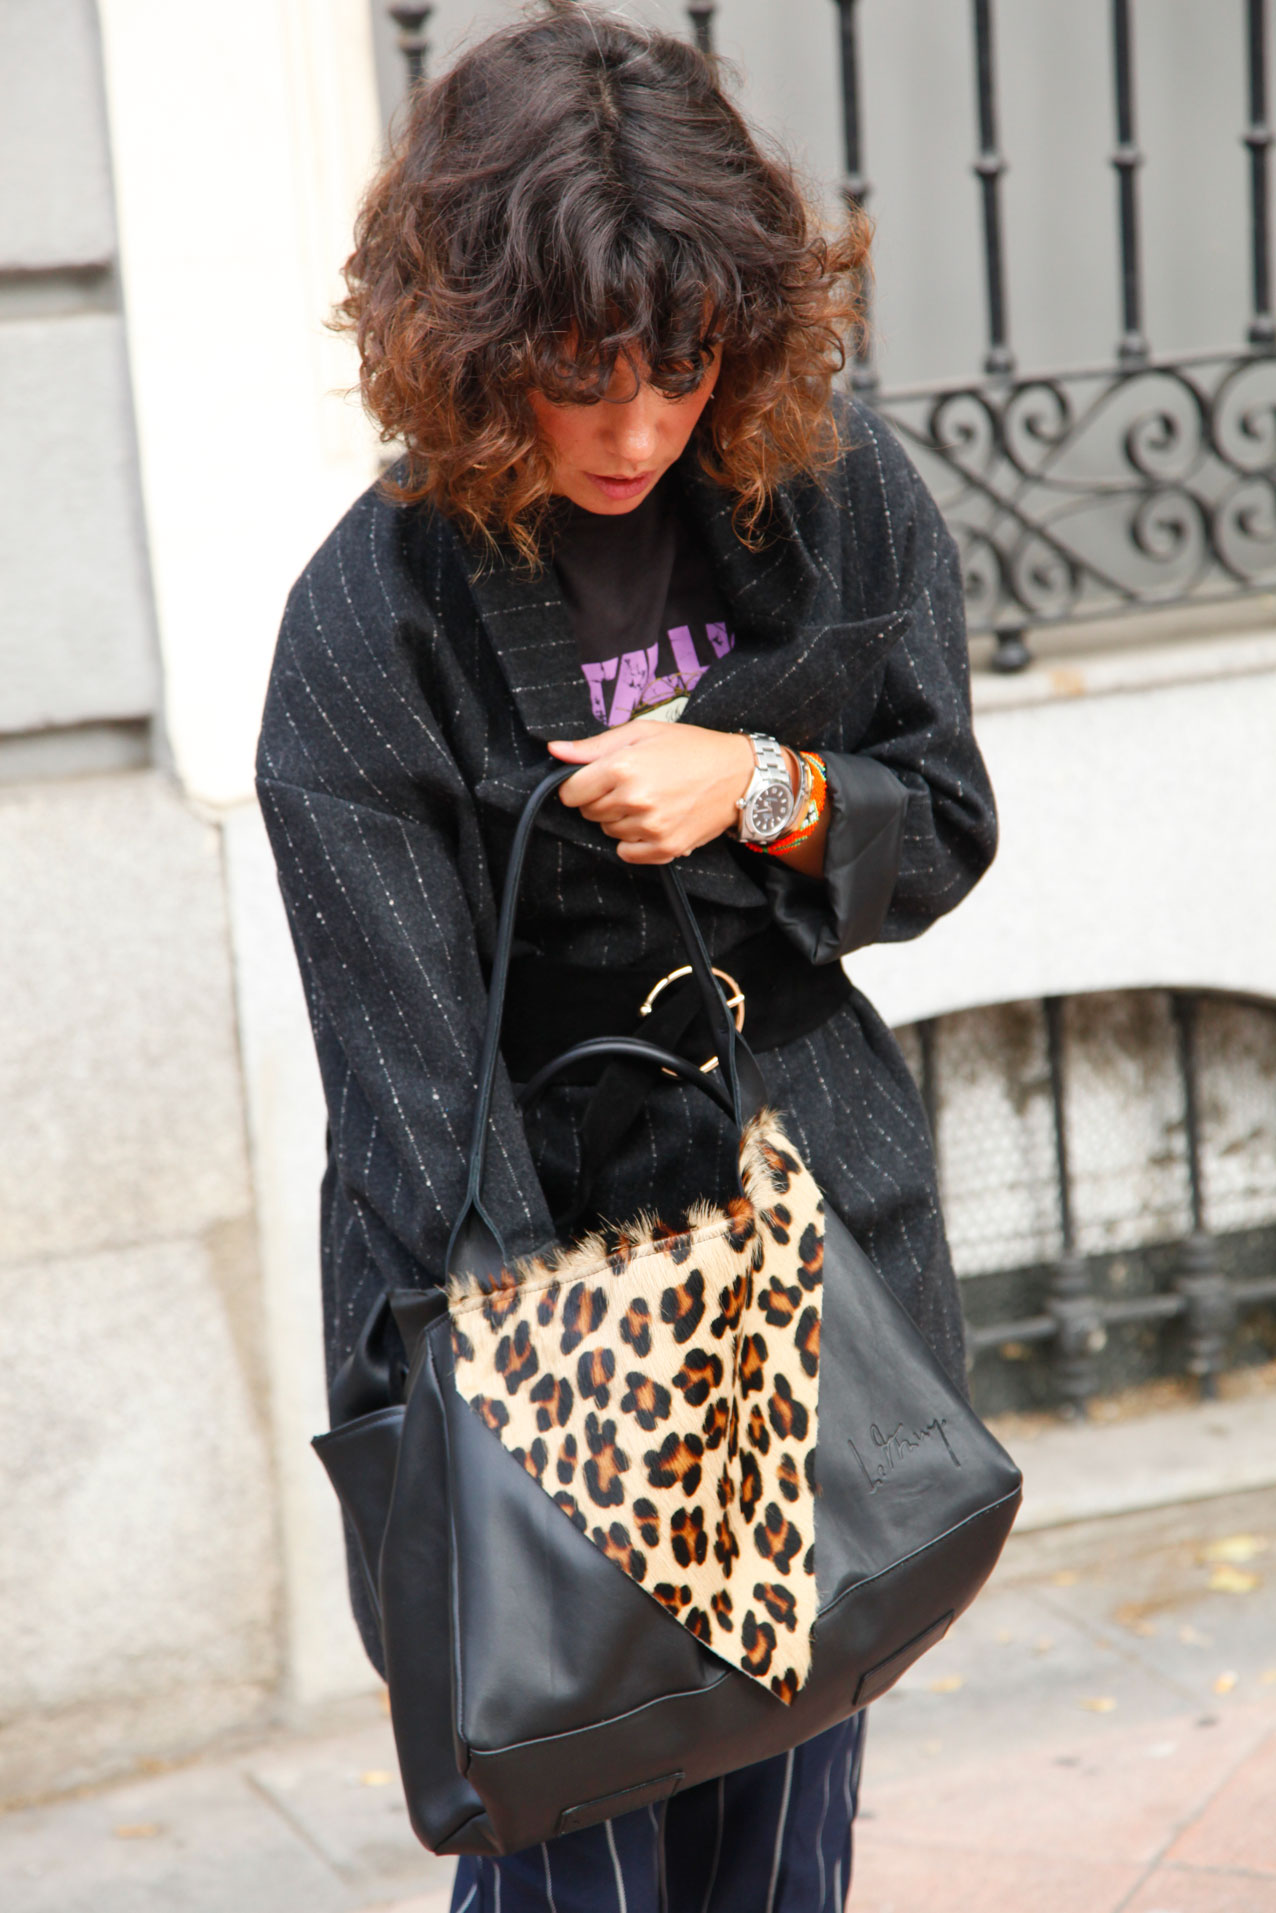 le-muy-mogambo-bag-leopardo-and-siplomatic-metallica-shirt-cool-lemonade-streetstyle7